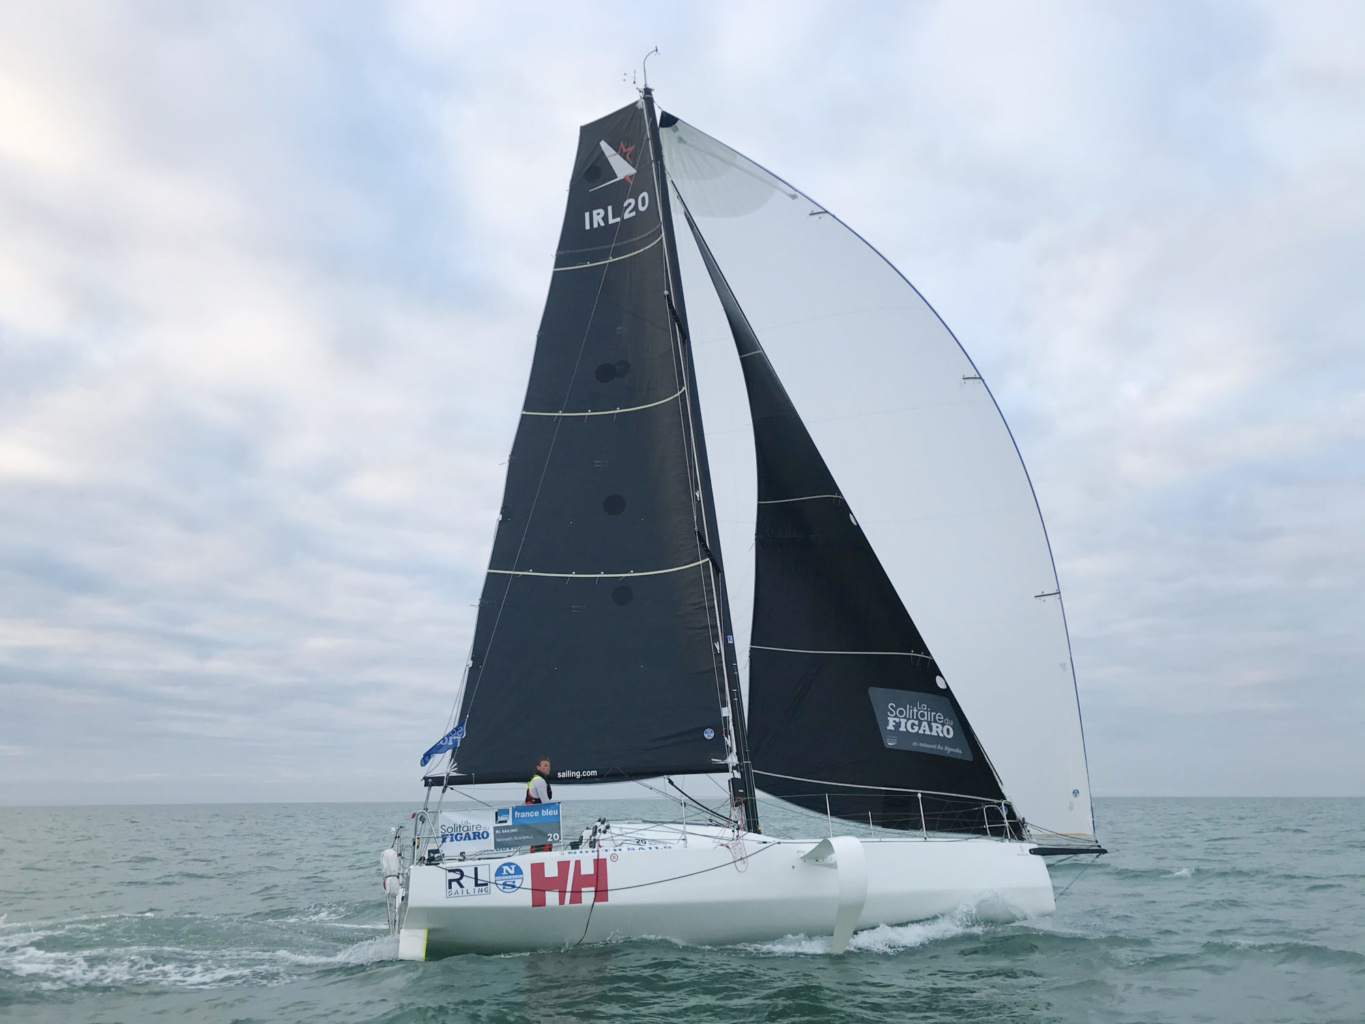 RL Sailing Team 2020 North Sails